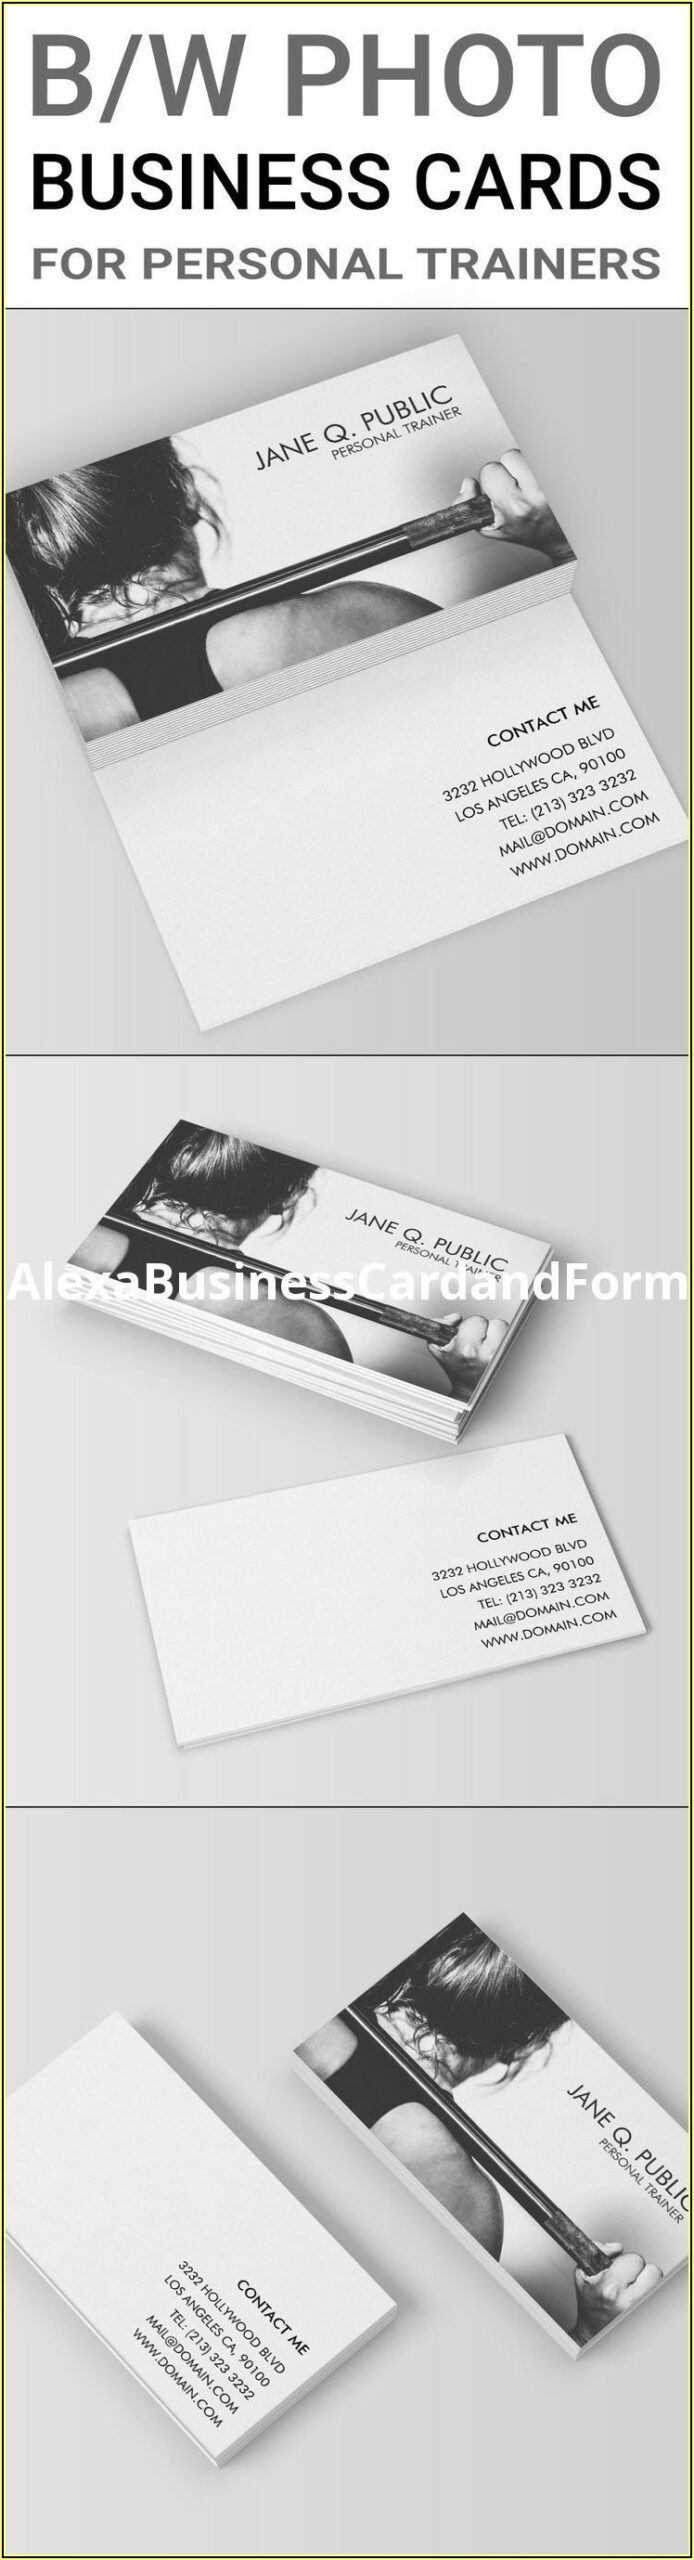 Capital One Buypower Business Card